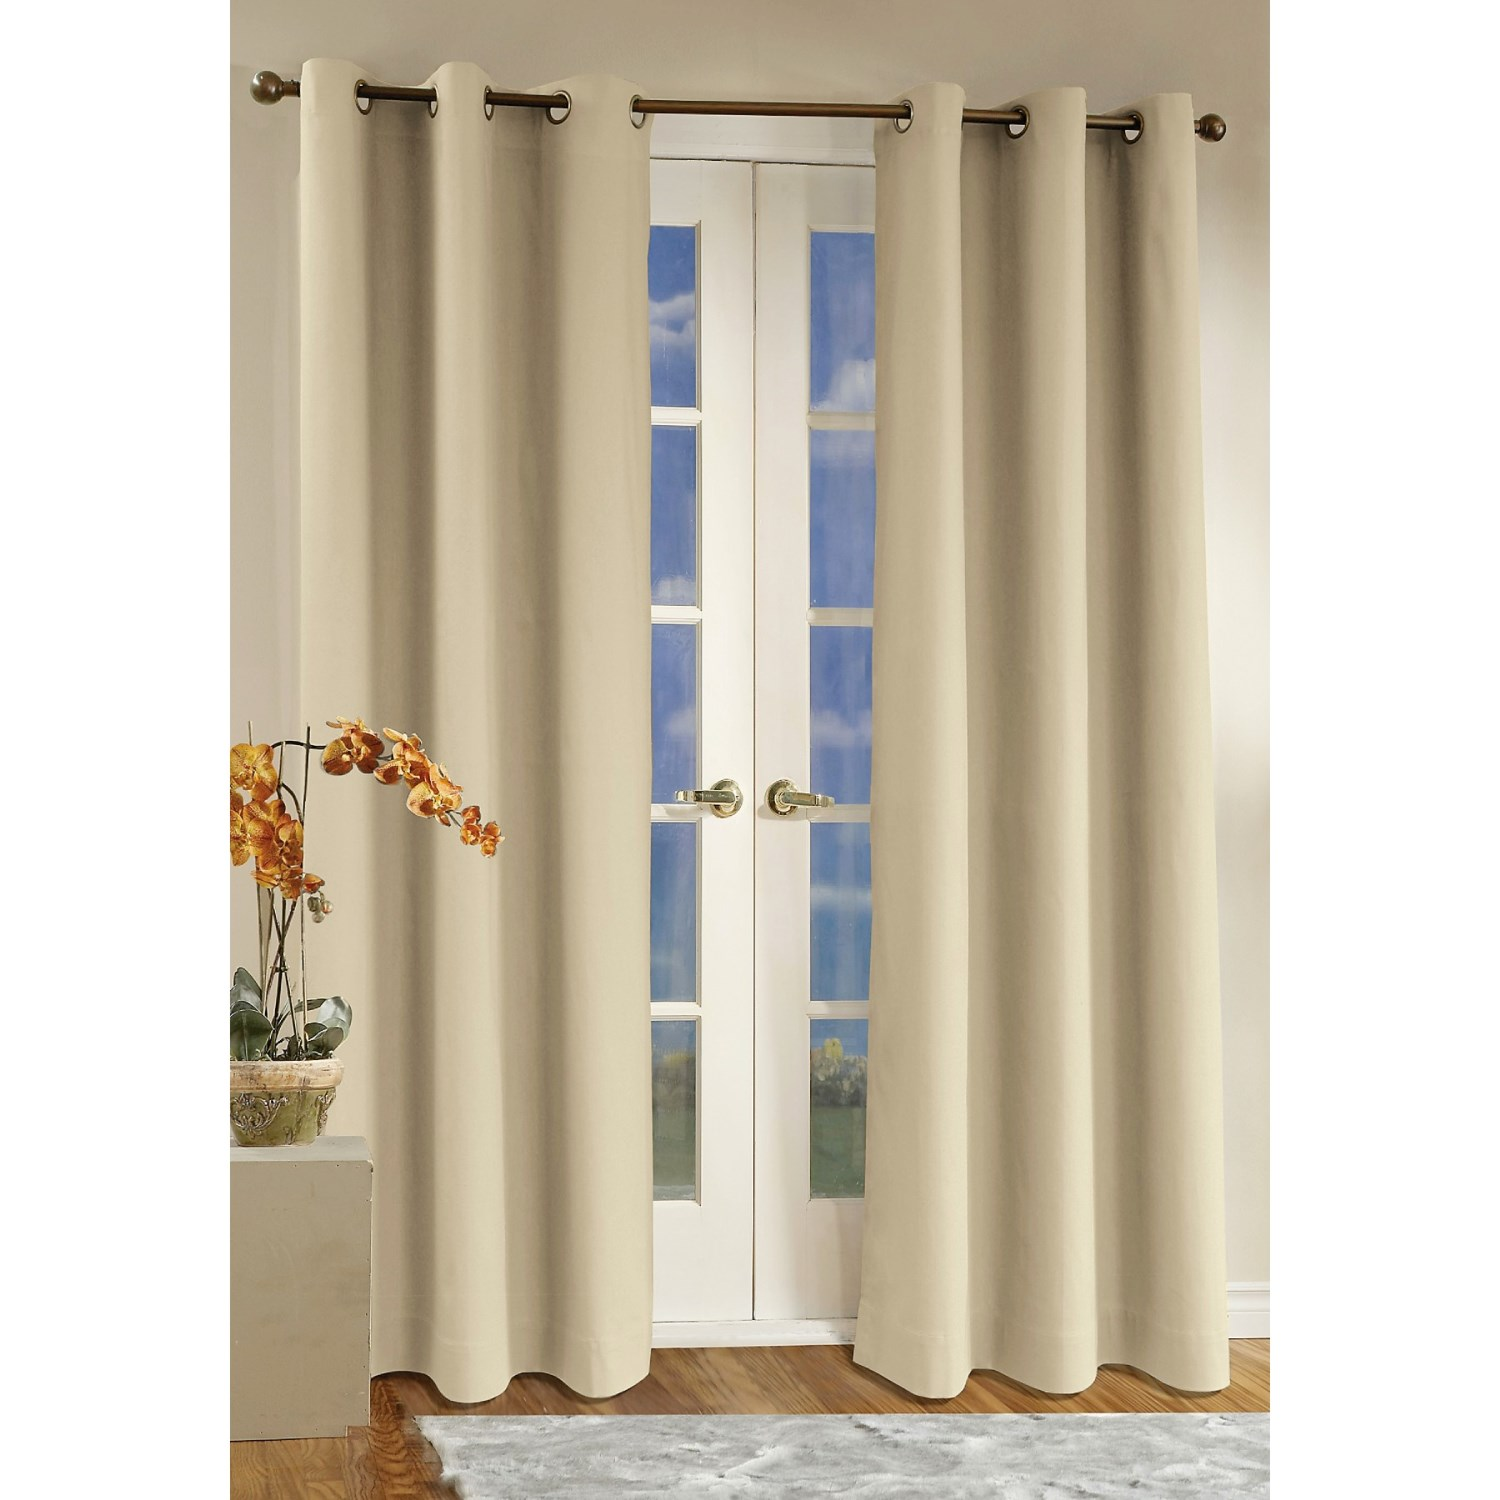 Thermalogic Weathermate Curtains 80x84 Grommet Top